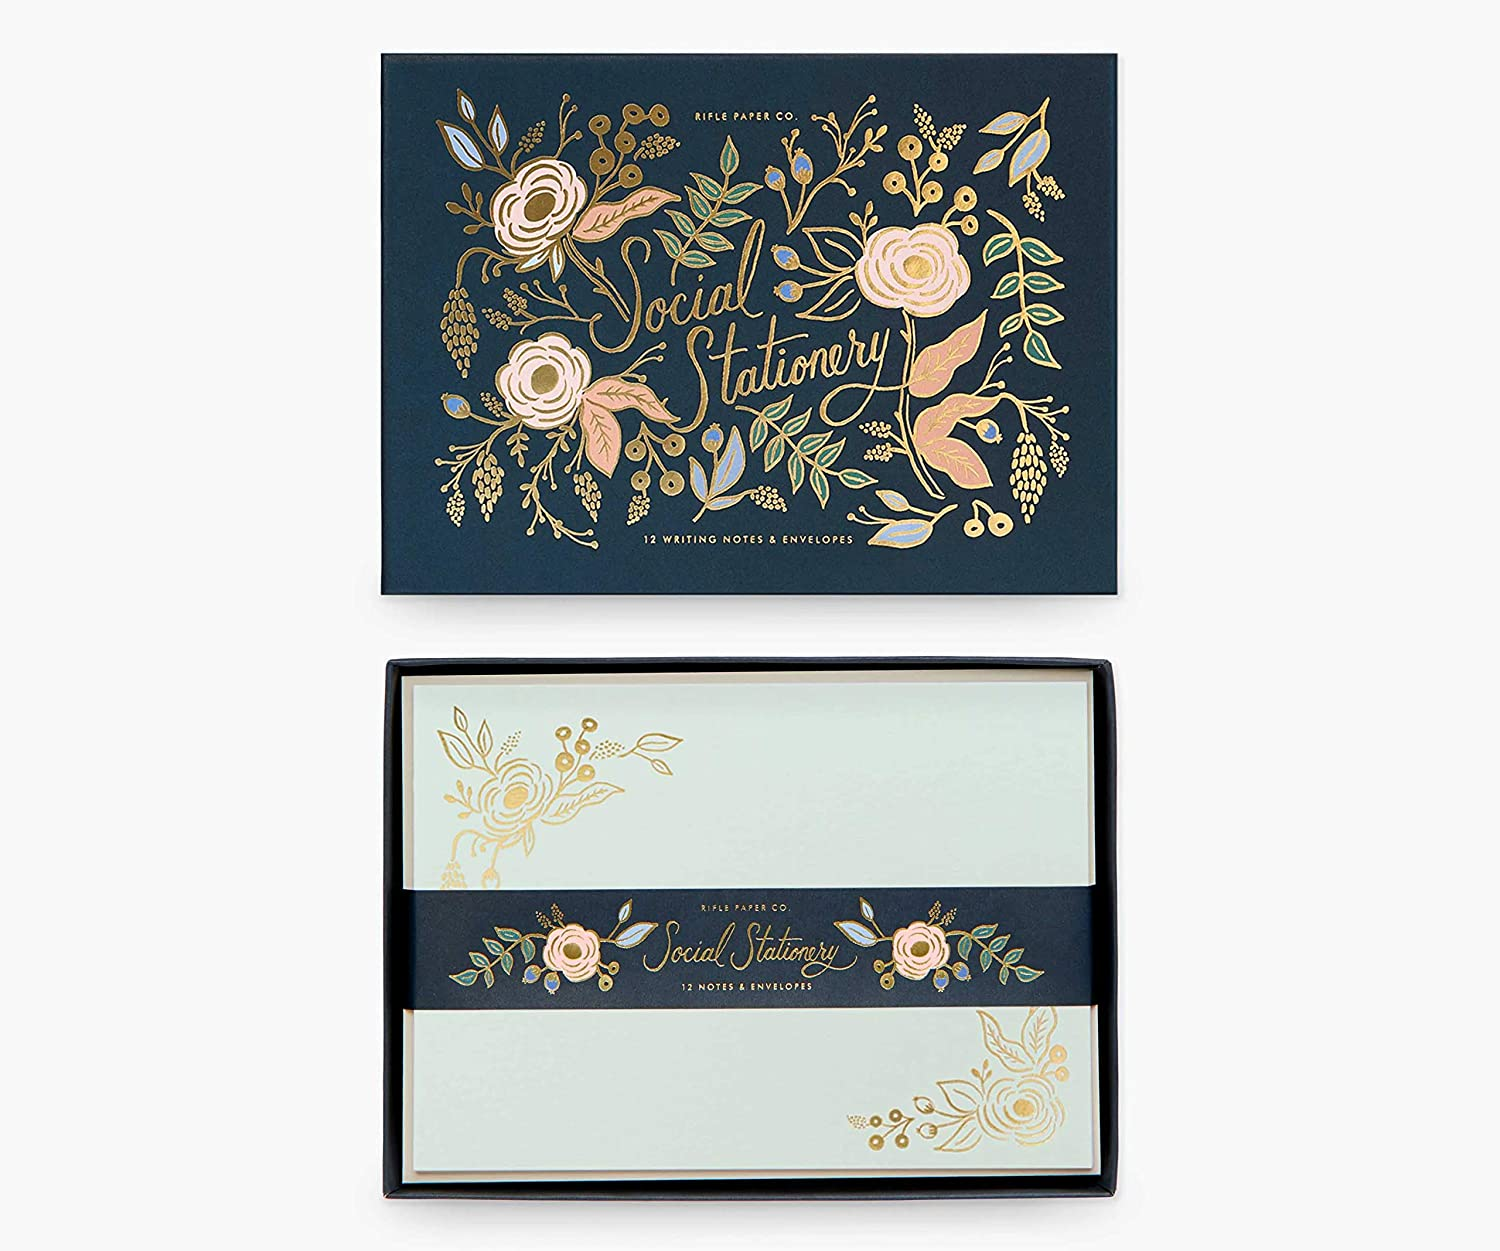 Rifle Paper Co. Colette Social Stationery Set, Our Social Stationery Sets Include 12 Cover-Weight Flat Notes, Each with a Three-Count of Four Different Designs, and Envelopes Insides a Matching Box